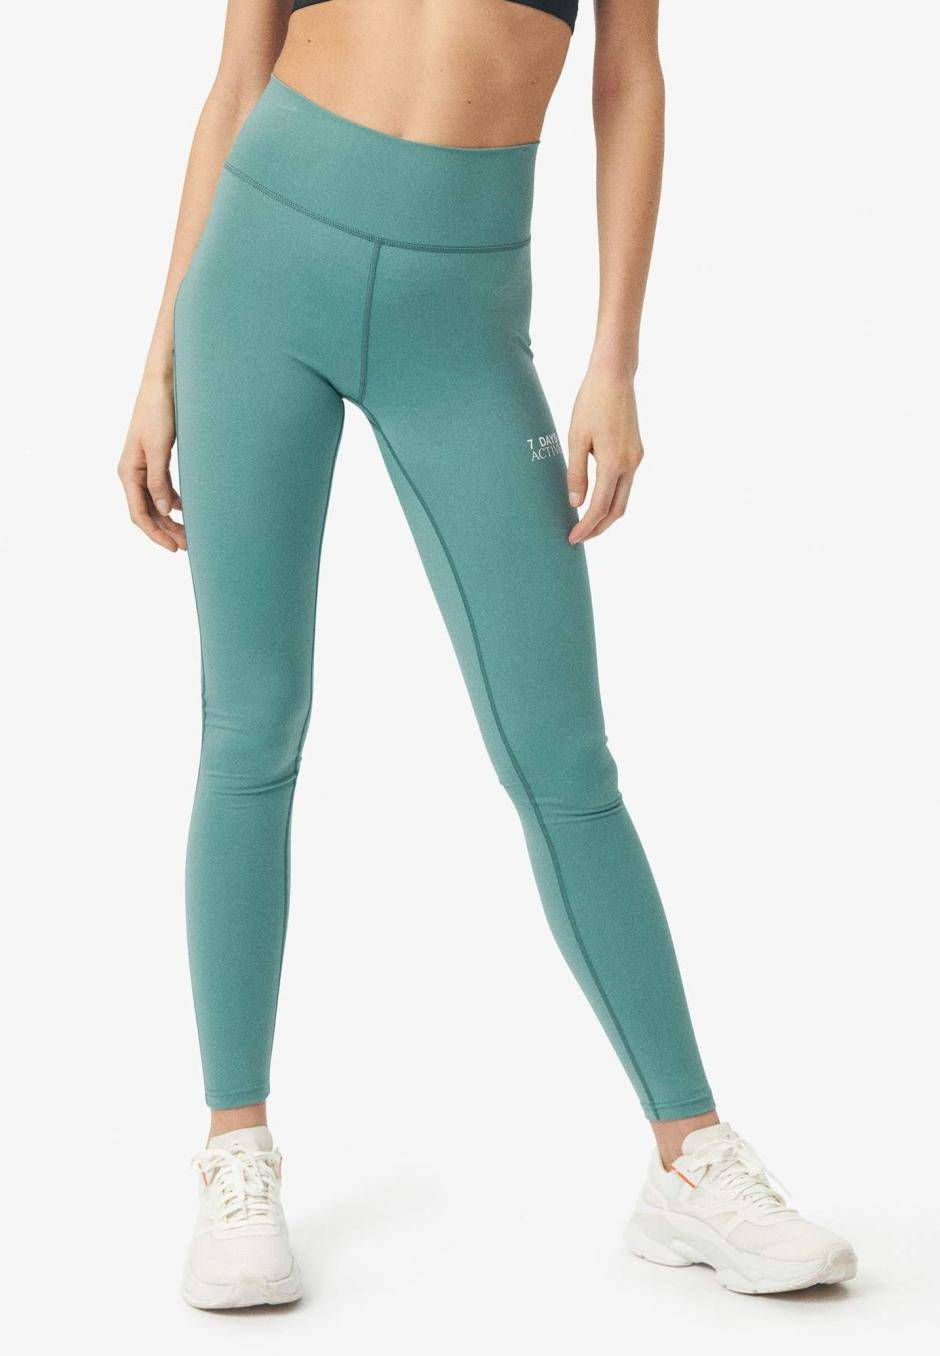 7 Days Active SV Tights Ocean Blue